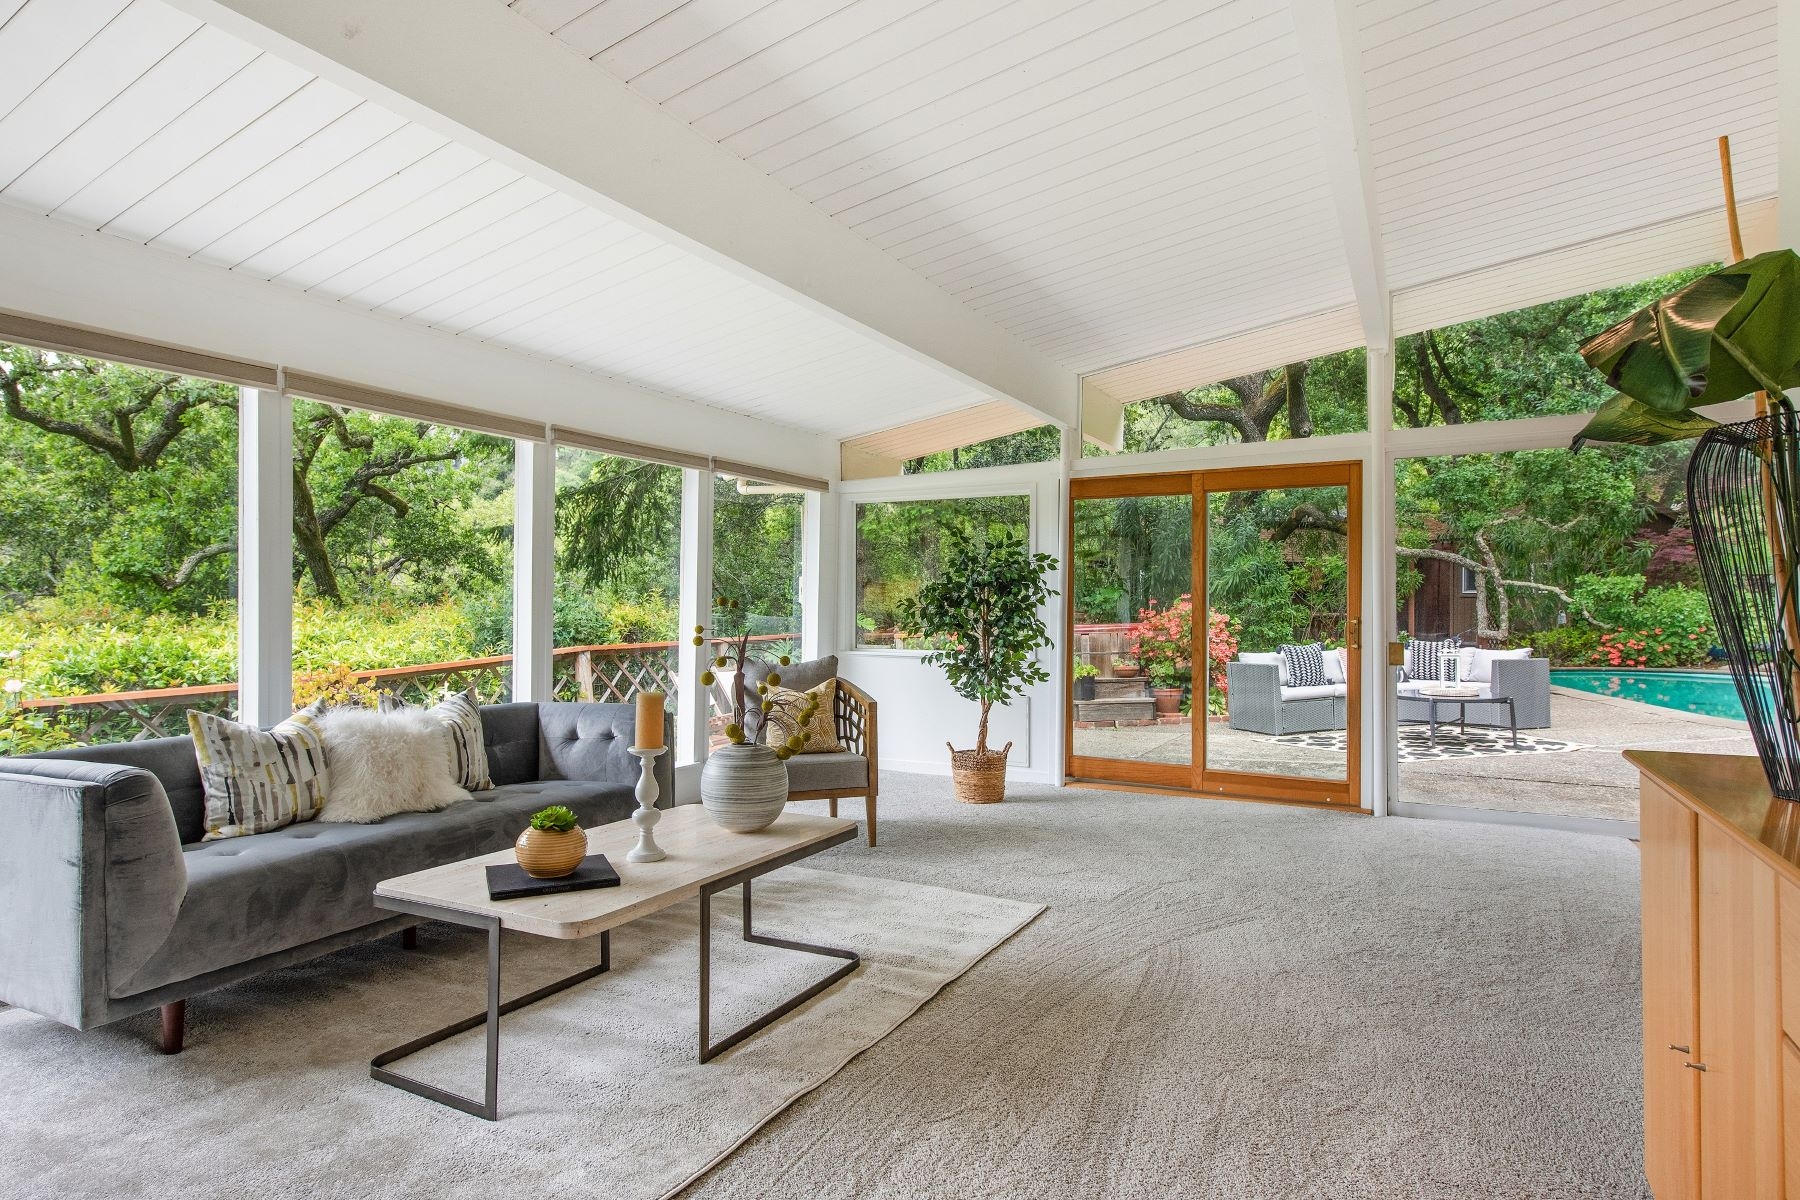 Single Family Homes for Active at Peaceful Mid-Century Modern in San Anselmo 10 Quail Way San Anselmo, California 94960 United States